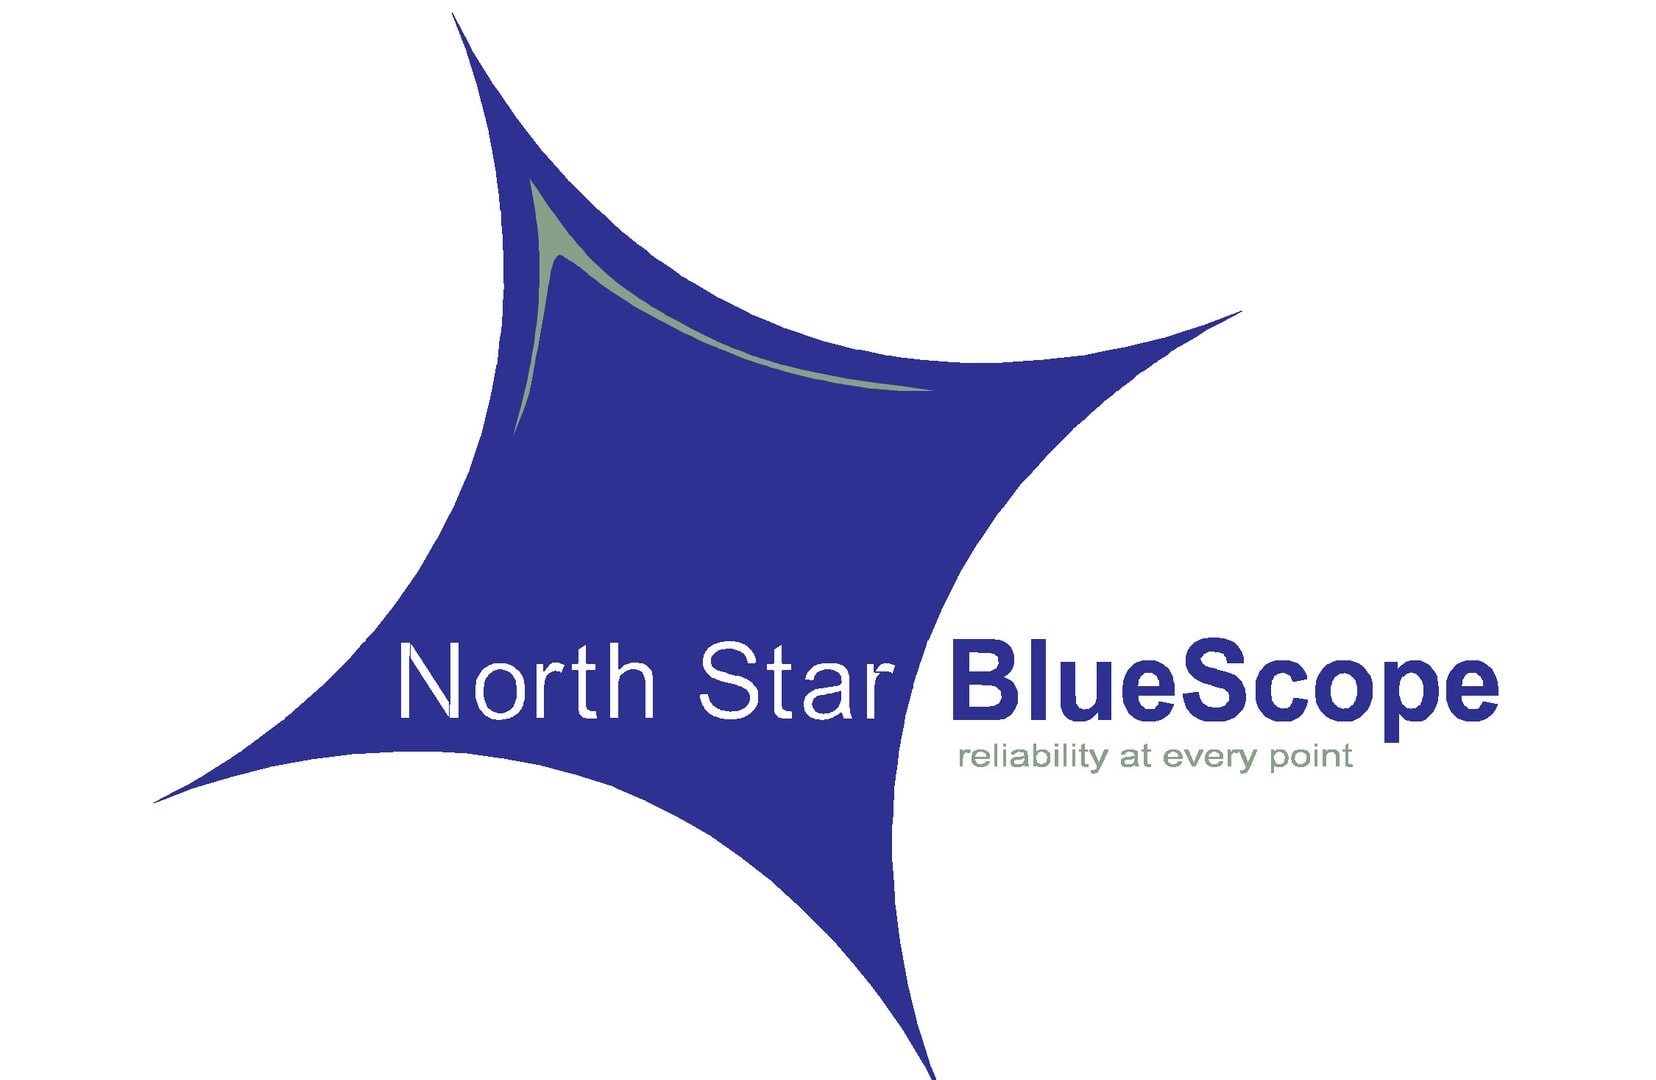 Northstar Bluescope